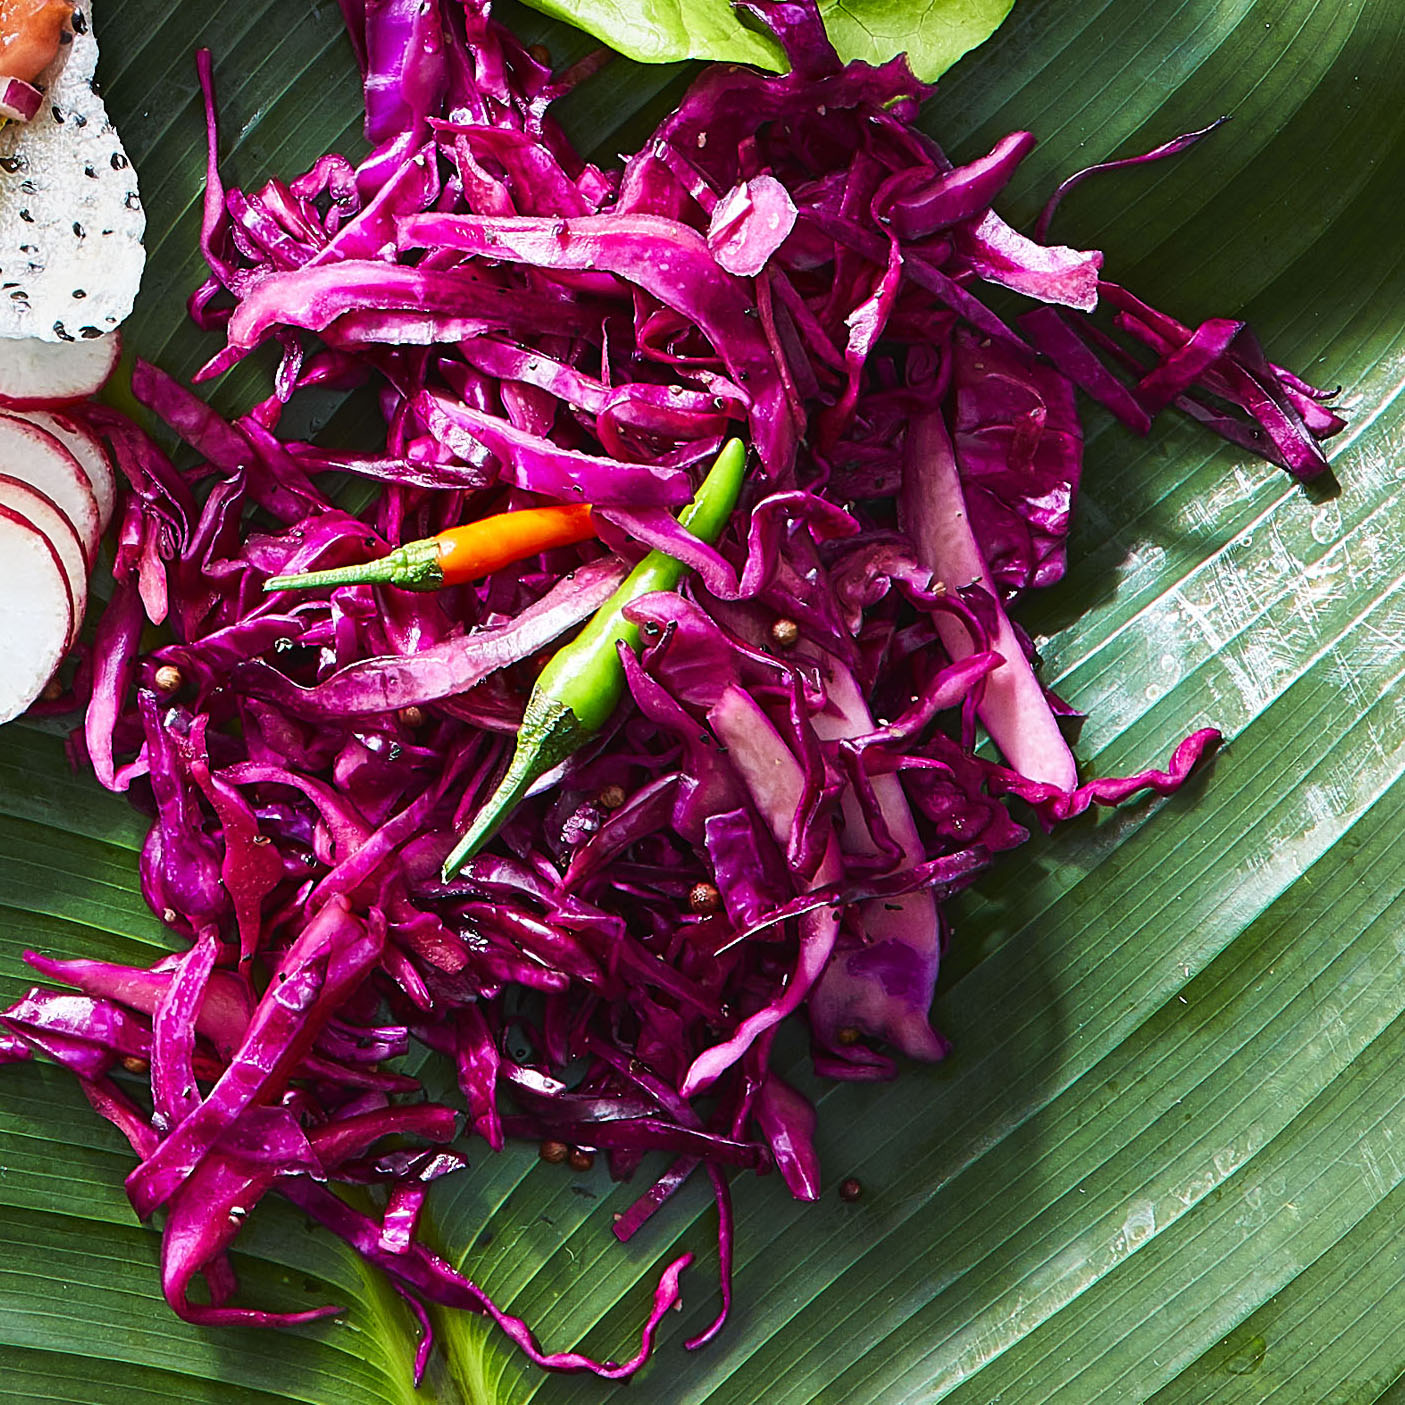 """""""Sour flavors are important in Filipino cooking, and quick pickles both heighten the sourness and serve as palate-cleansers, balancing and cutting through fattier dishes,"""" says Yana Gilbuena. """"This cold-flash-pickling method works with all kinds of vegetables, but red cabbage is an easy and gorgeous place to start."""""""